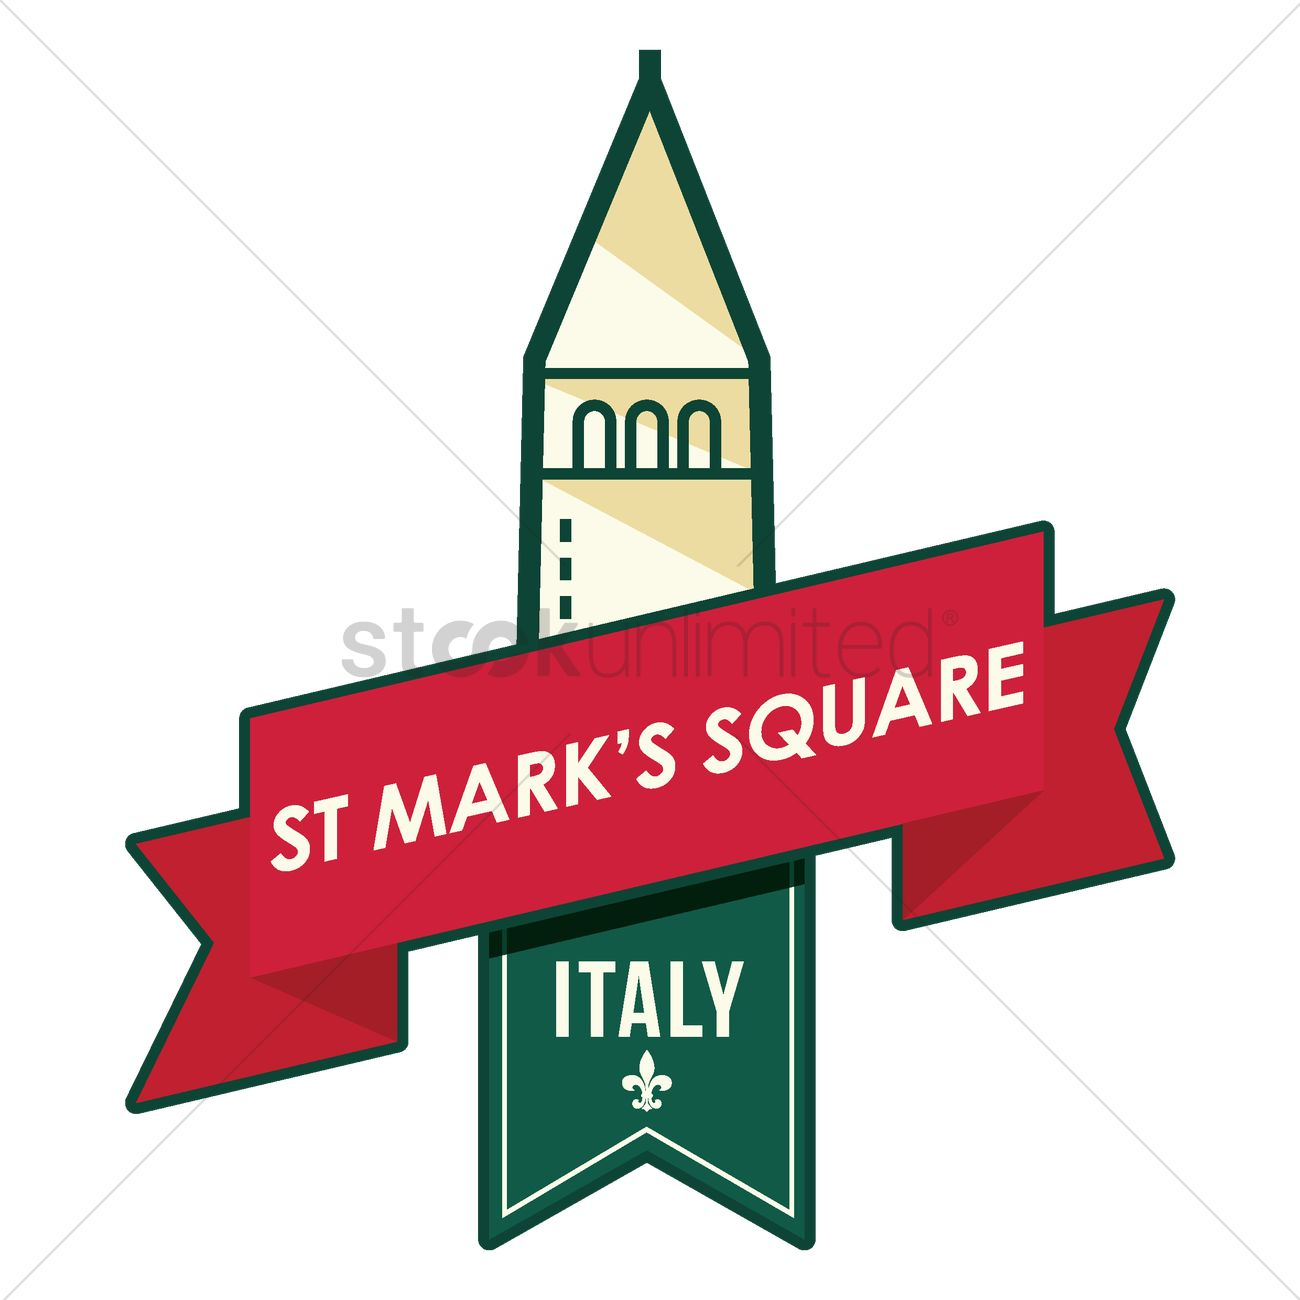 St. mark's square Vector Image.